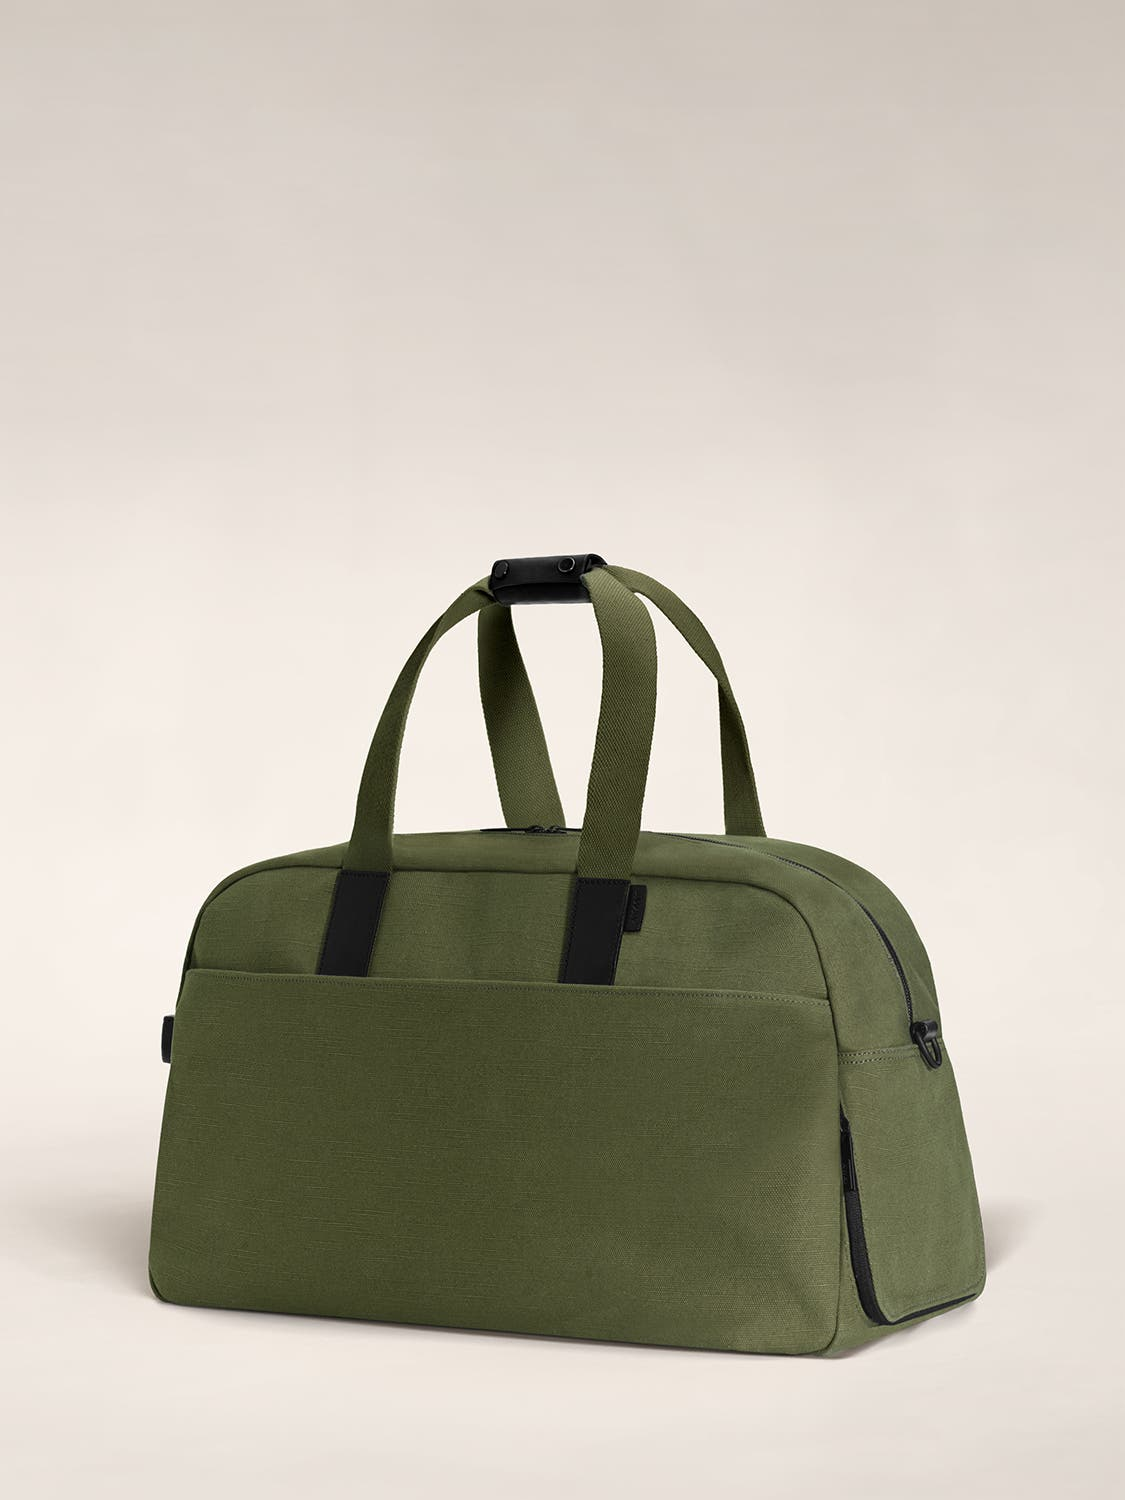 Angled view of a olive color canvas duffle bag with black leather trim.